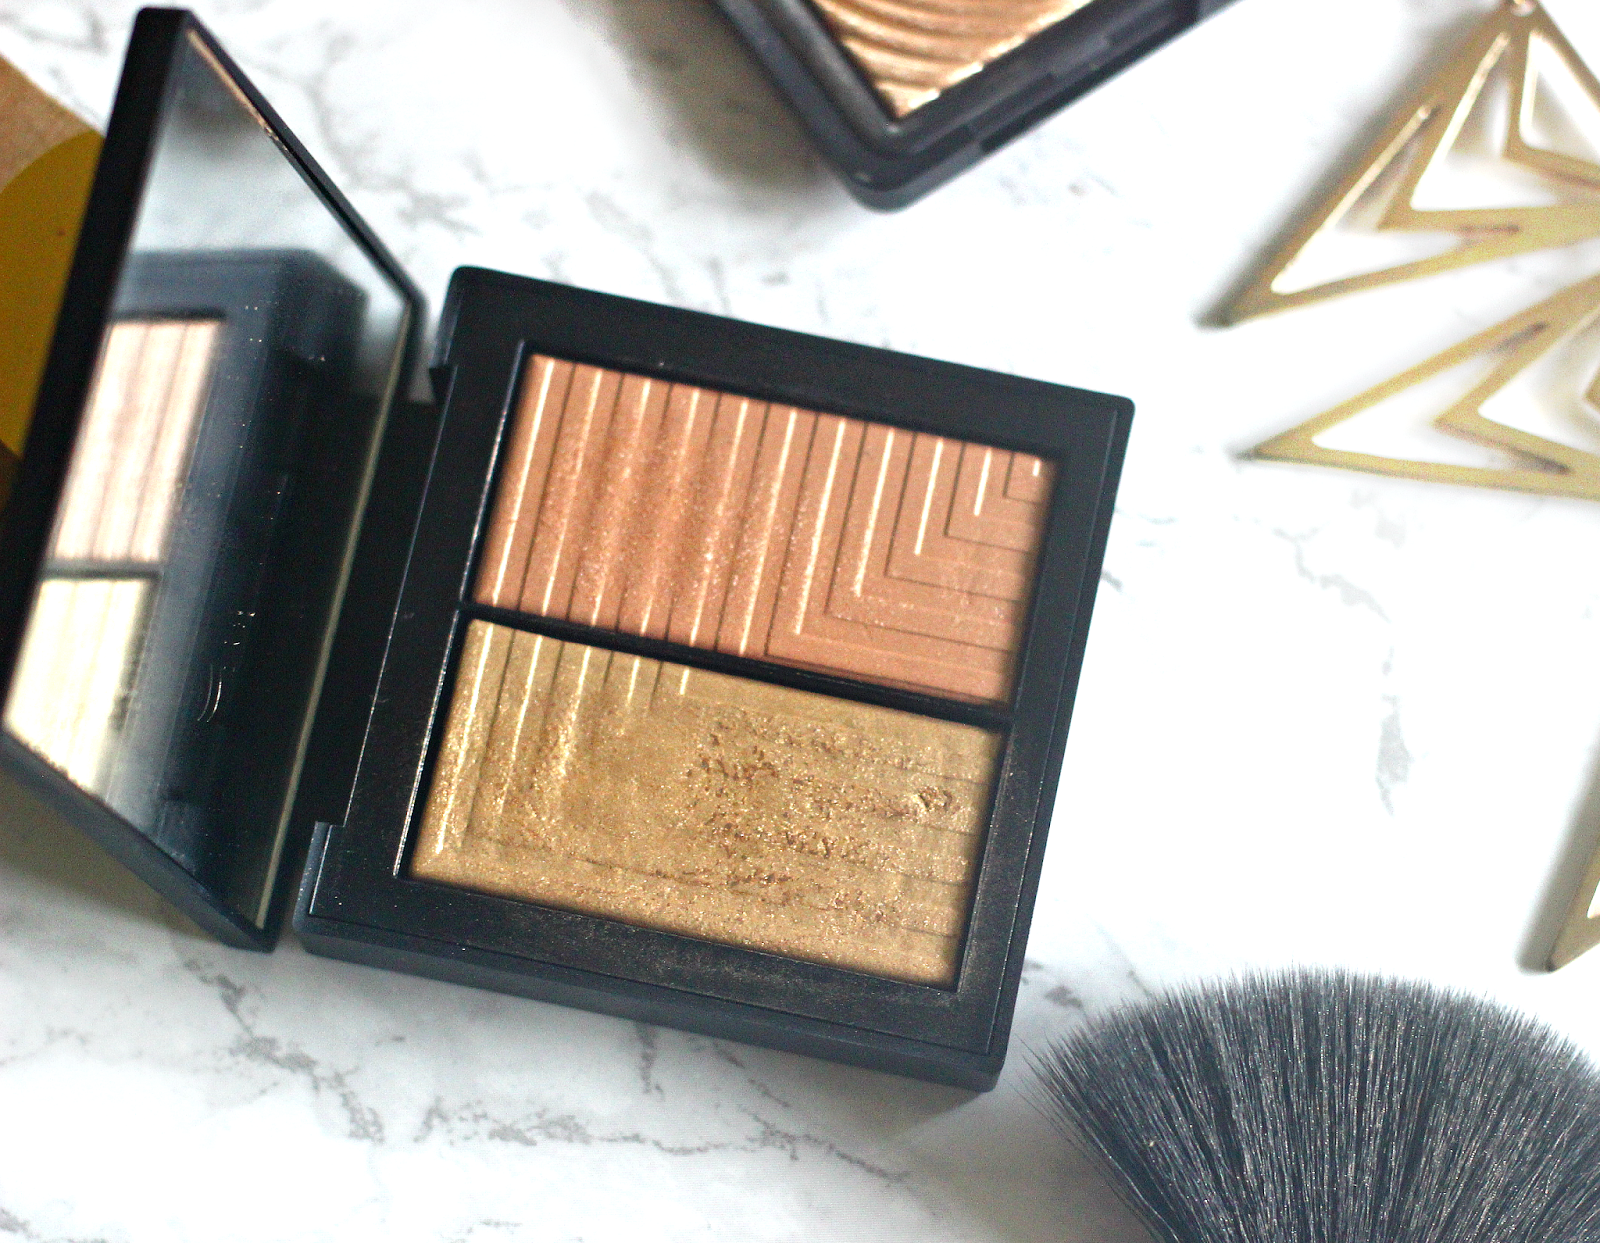 NARS dual intensity blush in jubiliation